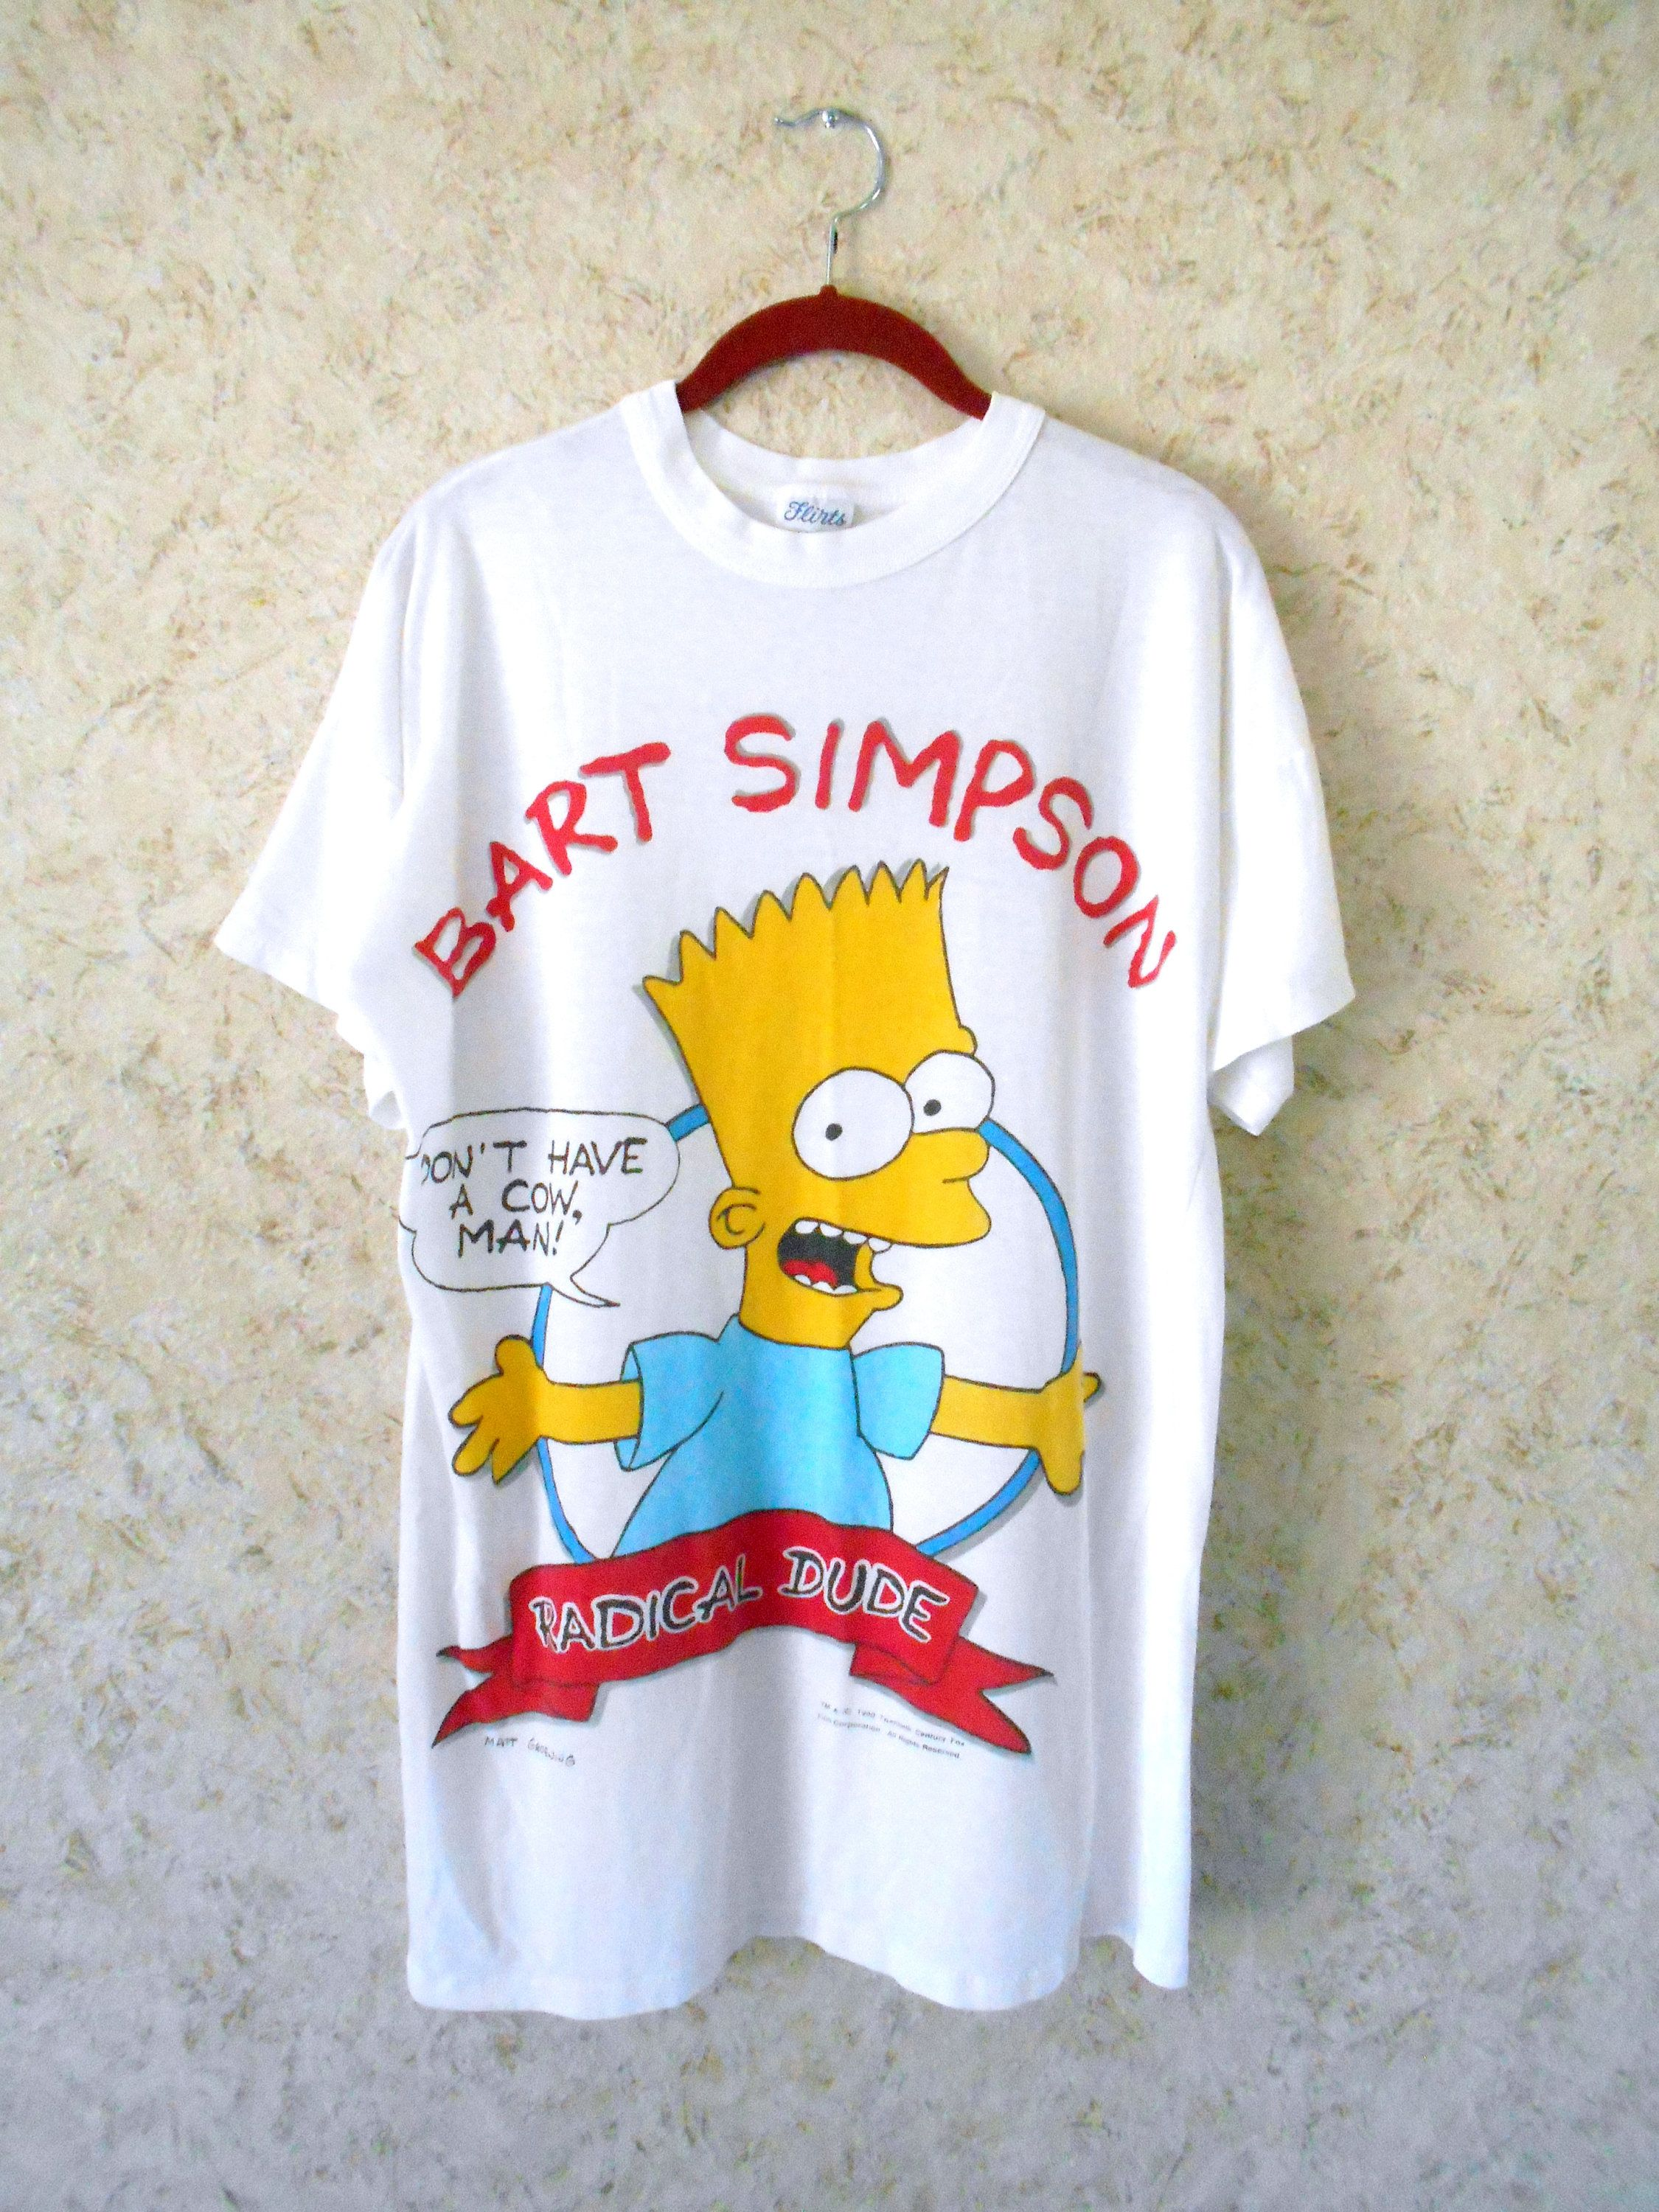 fc5e4b3b0 Vintage 90s Bart Simpson Rare Night Sleep Shirt Tee Radical Dude Dont Have  A Cow Novelty Graphic Tee 1990 Oversized One Size by CoolDogVintage on Etsy